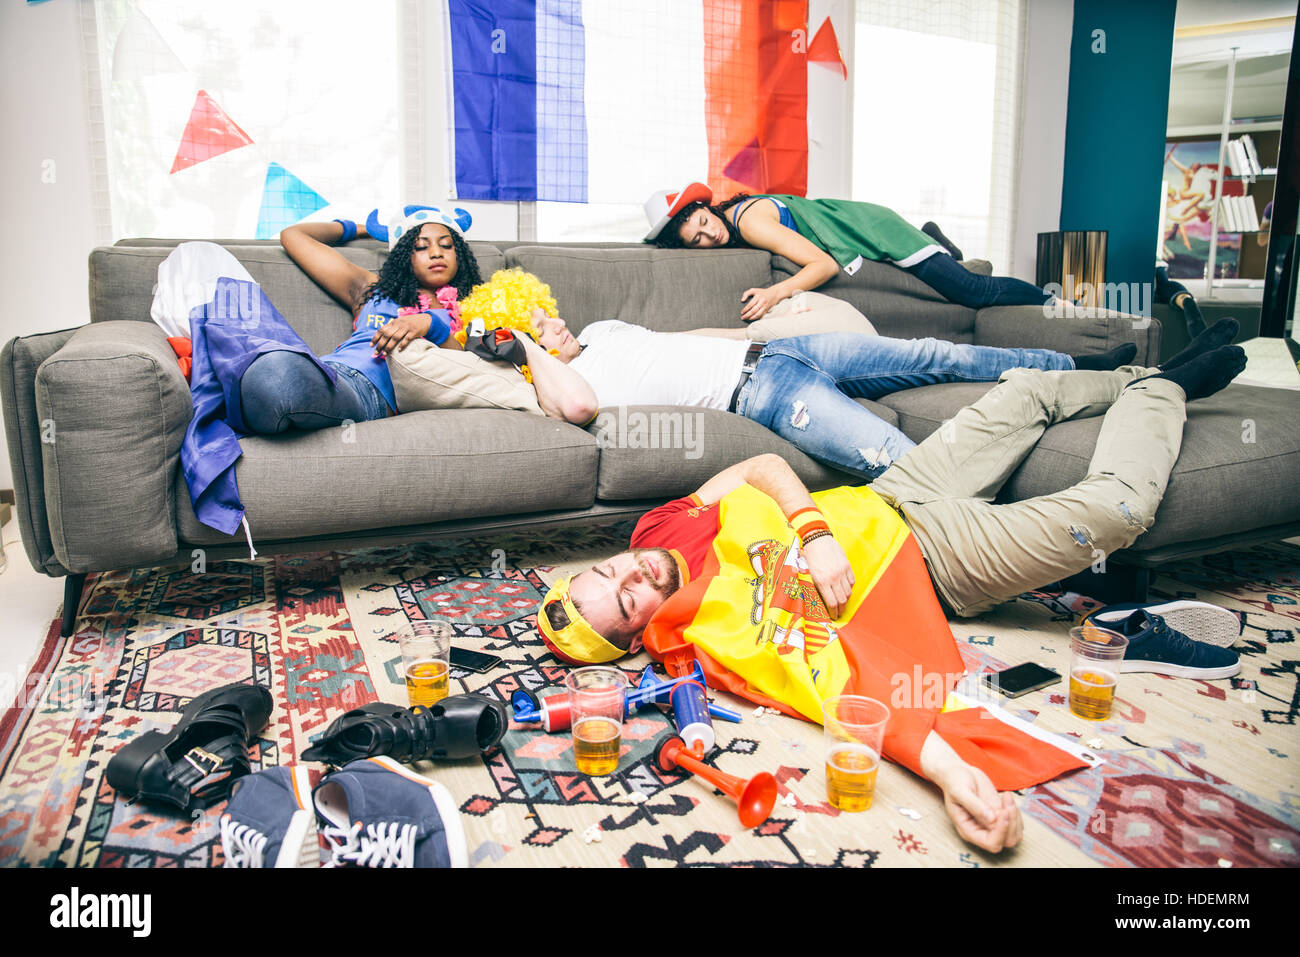 Elegant Group Of Friends Sleeping In A Living Room After Party   Drunk Supporters  Resting After Celebrating Part 25